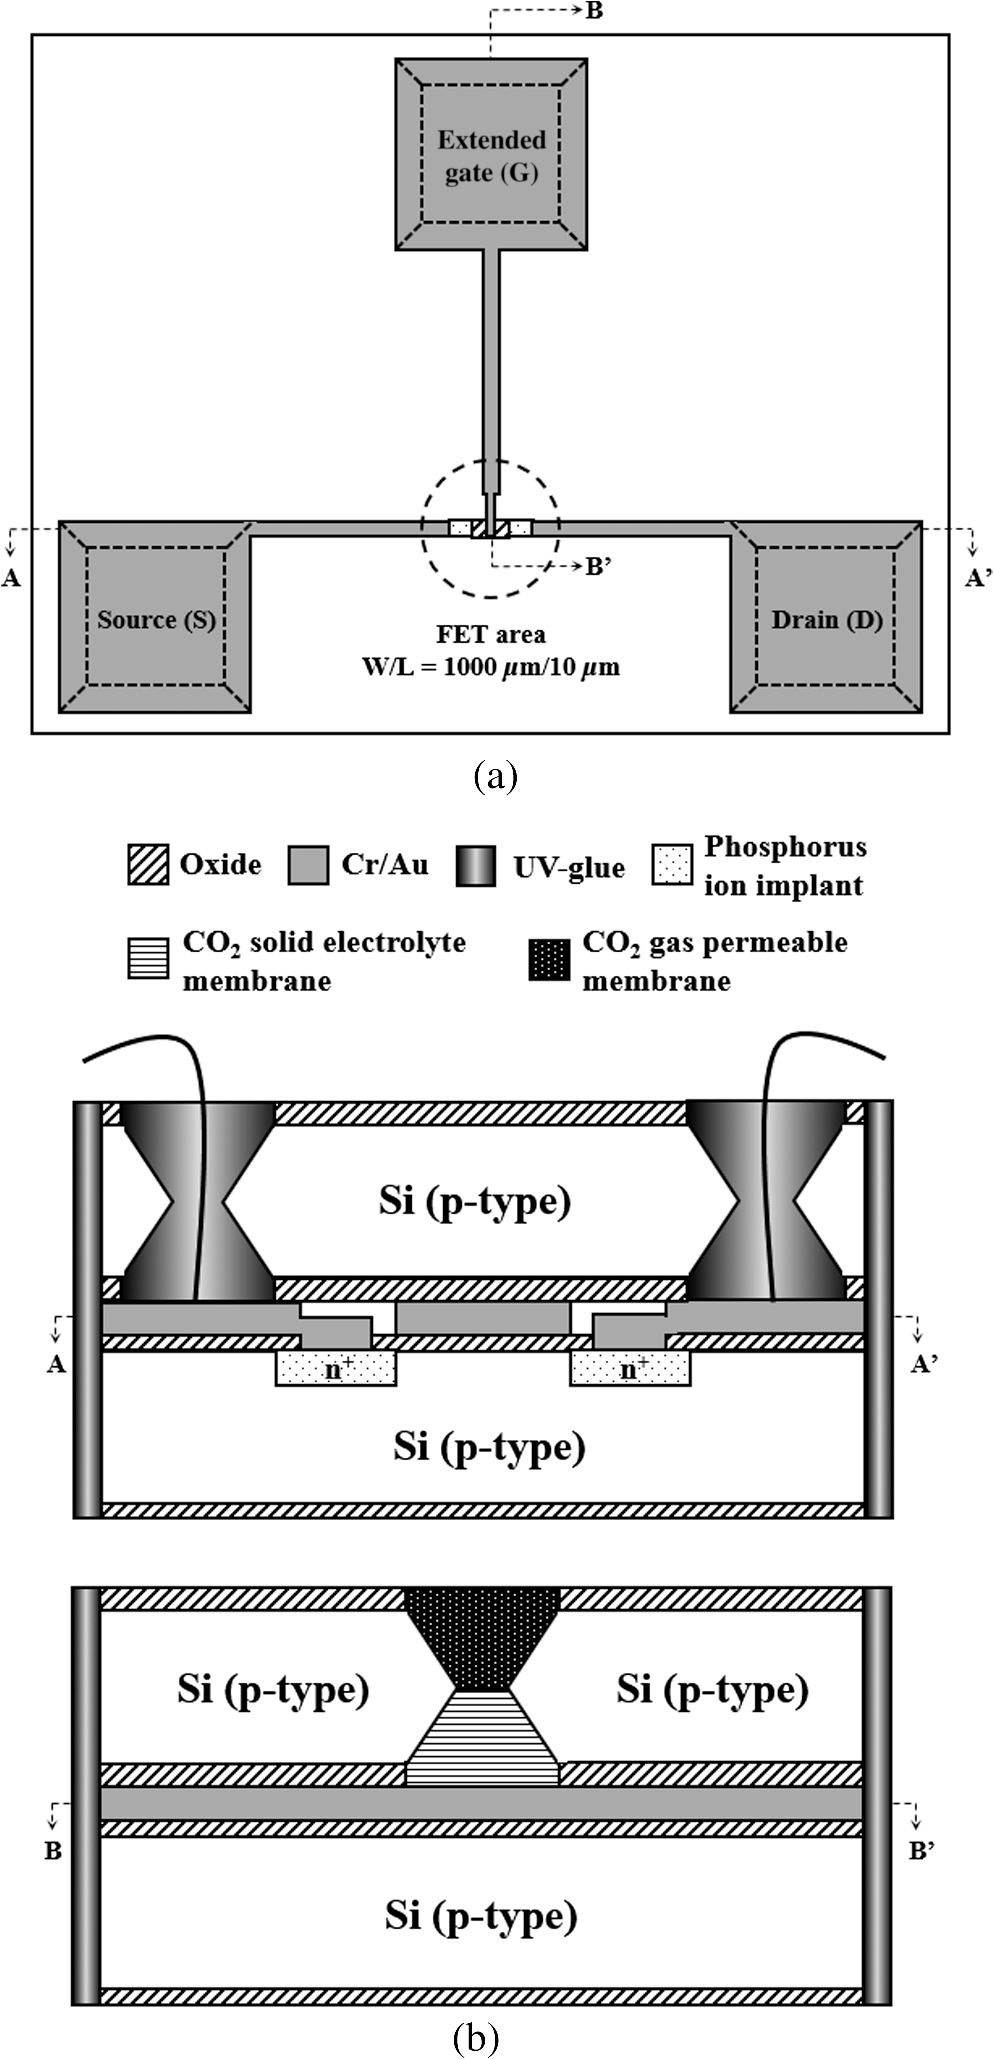 High Performance Extended Gate Field Effect Transistor Based 1khz Sine Wave Generator With Bc238 A Top View Layout And B Cross Sectional Structure Of The Presented Egfet Carbon Dioxide Co2 Co 2